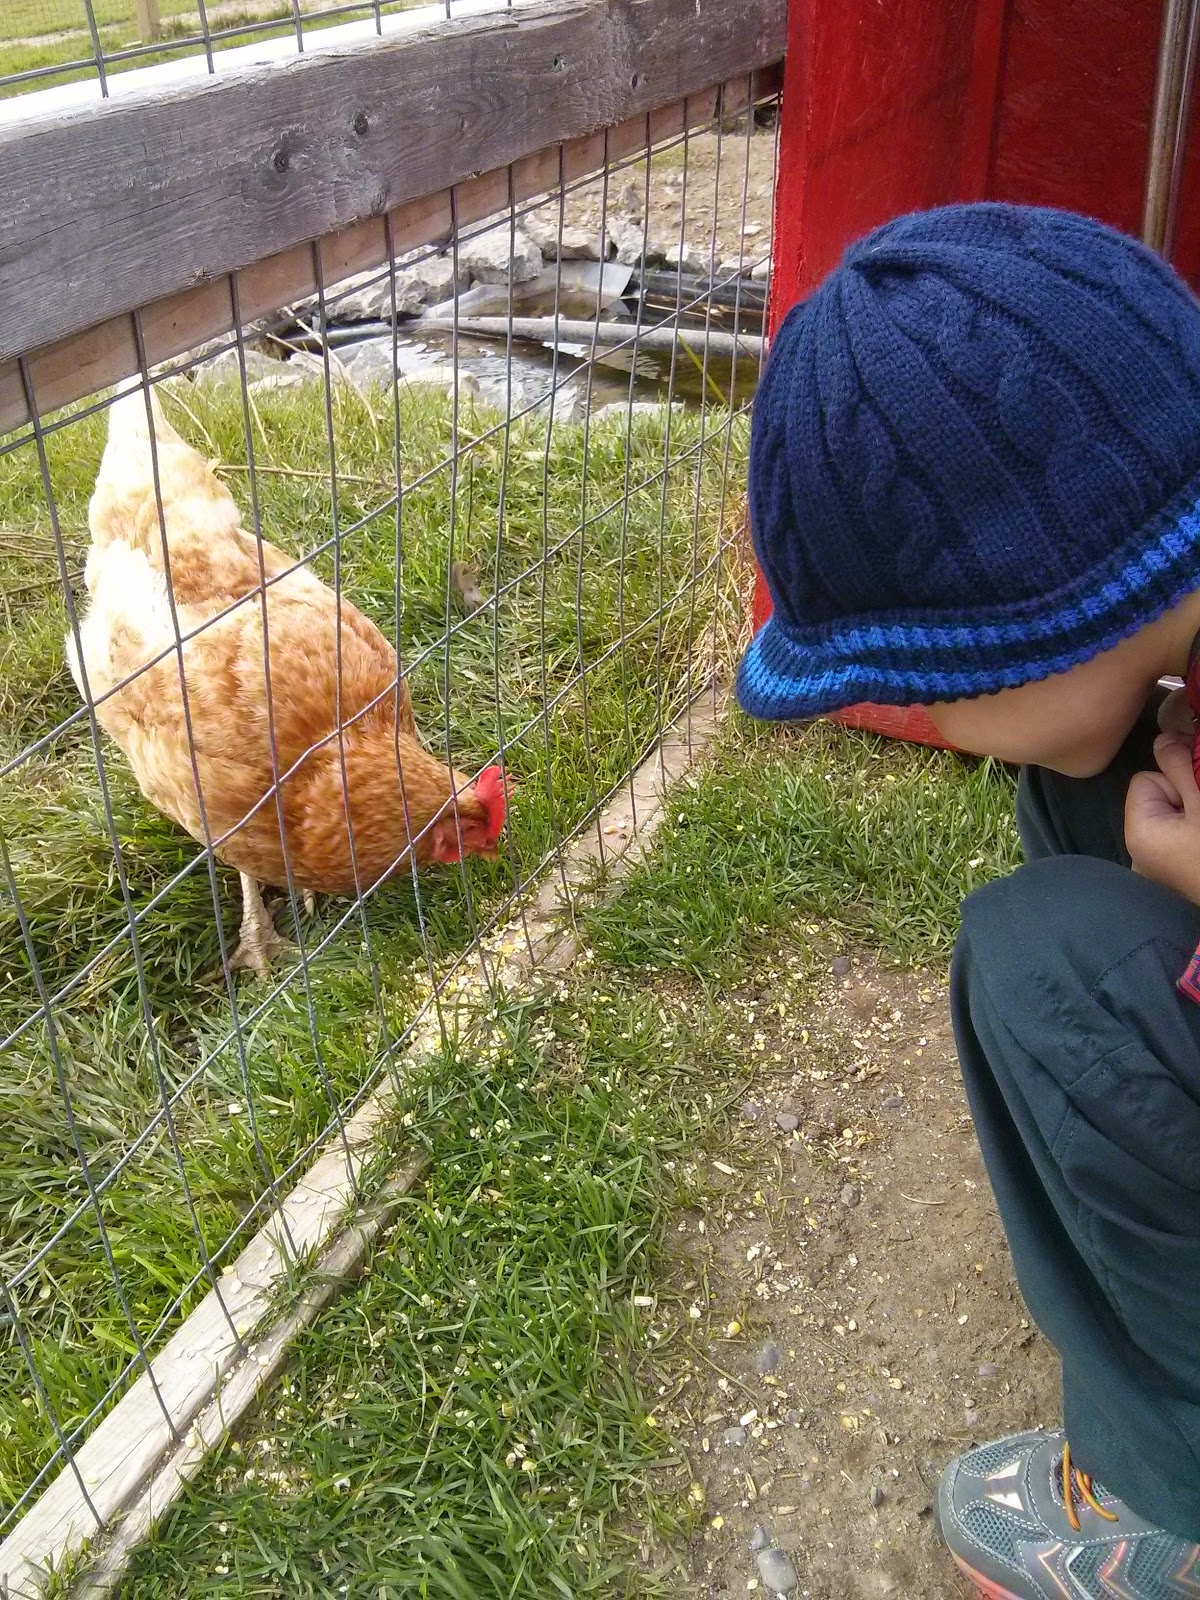 chicken at Big Apple Colborne petting farm copyright 2014 OneQuarterMama.ca